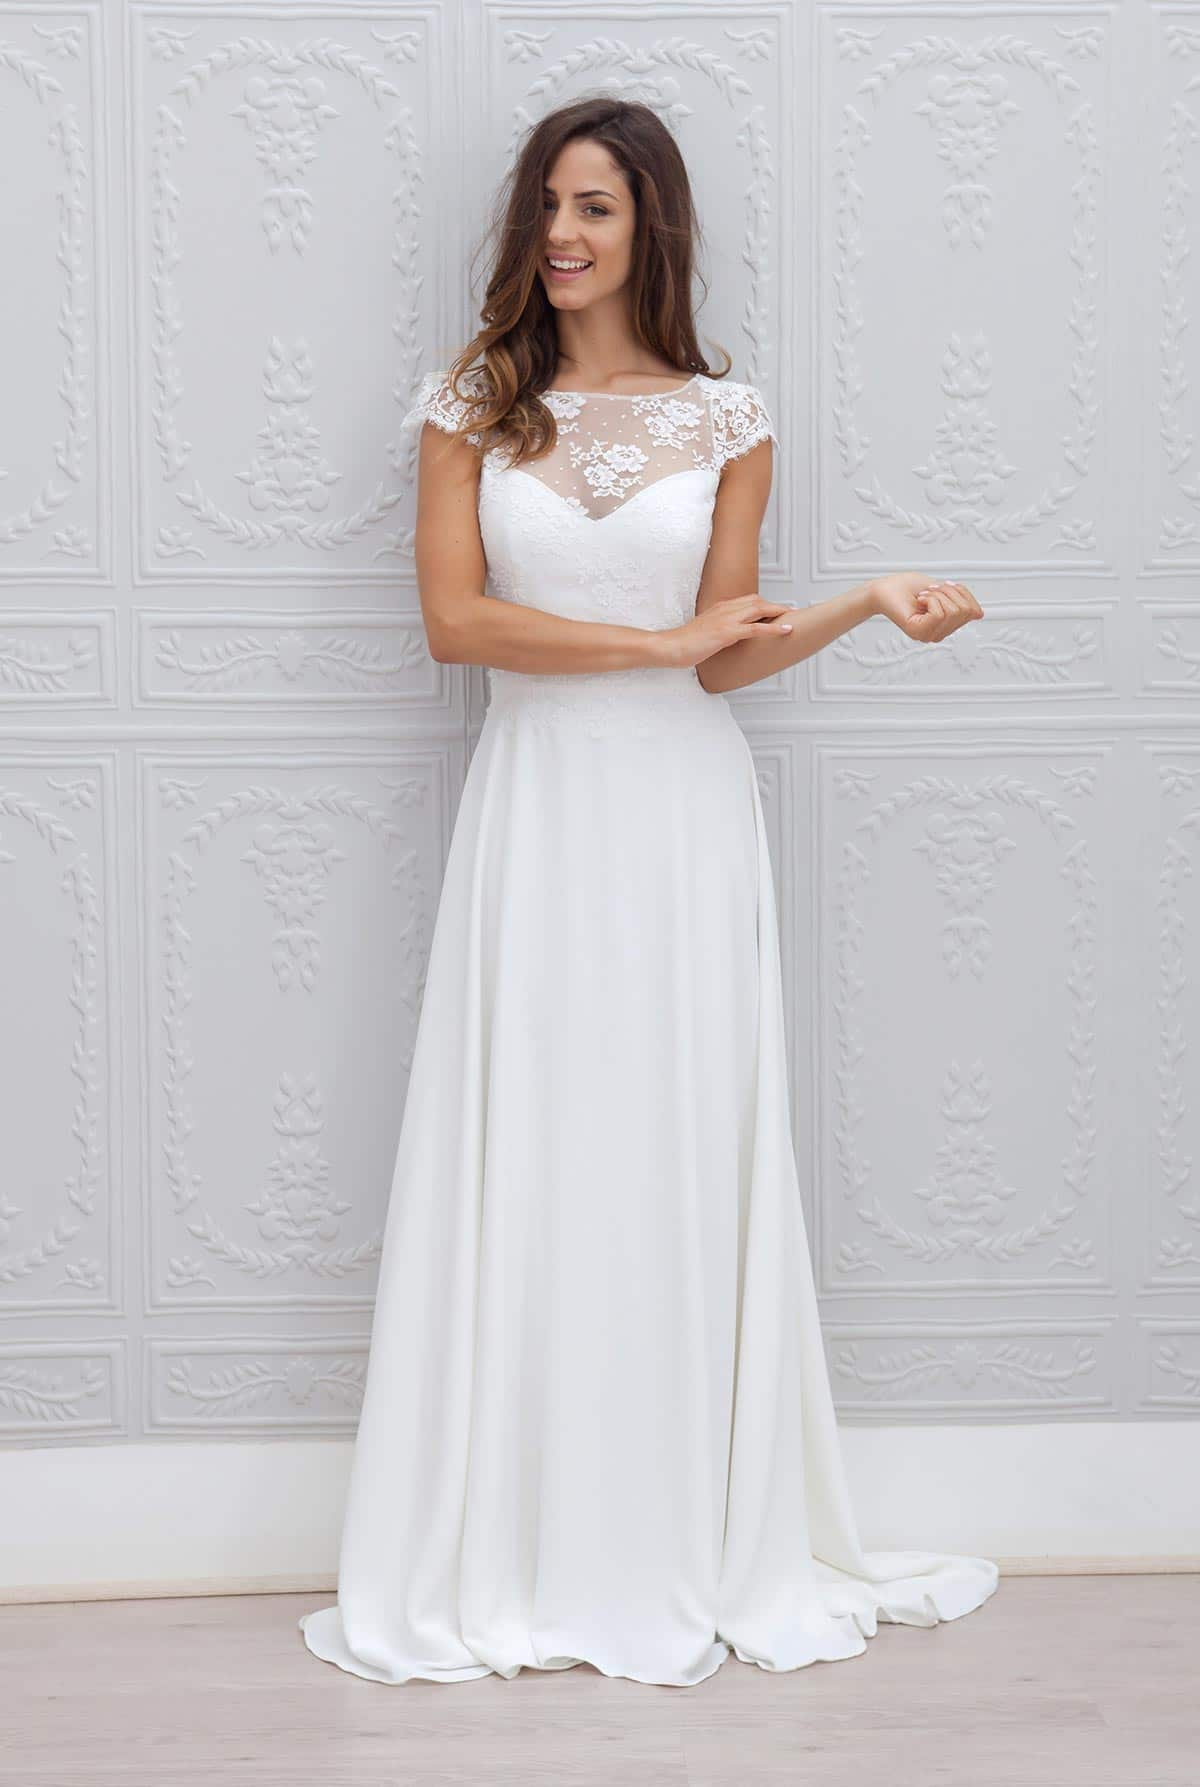 Marie Laporte collection 2015 Marie Laporte Collection 2015 5 - Blog Mariage